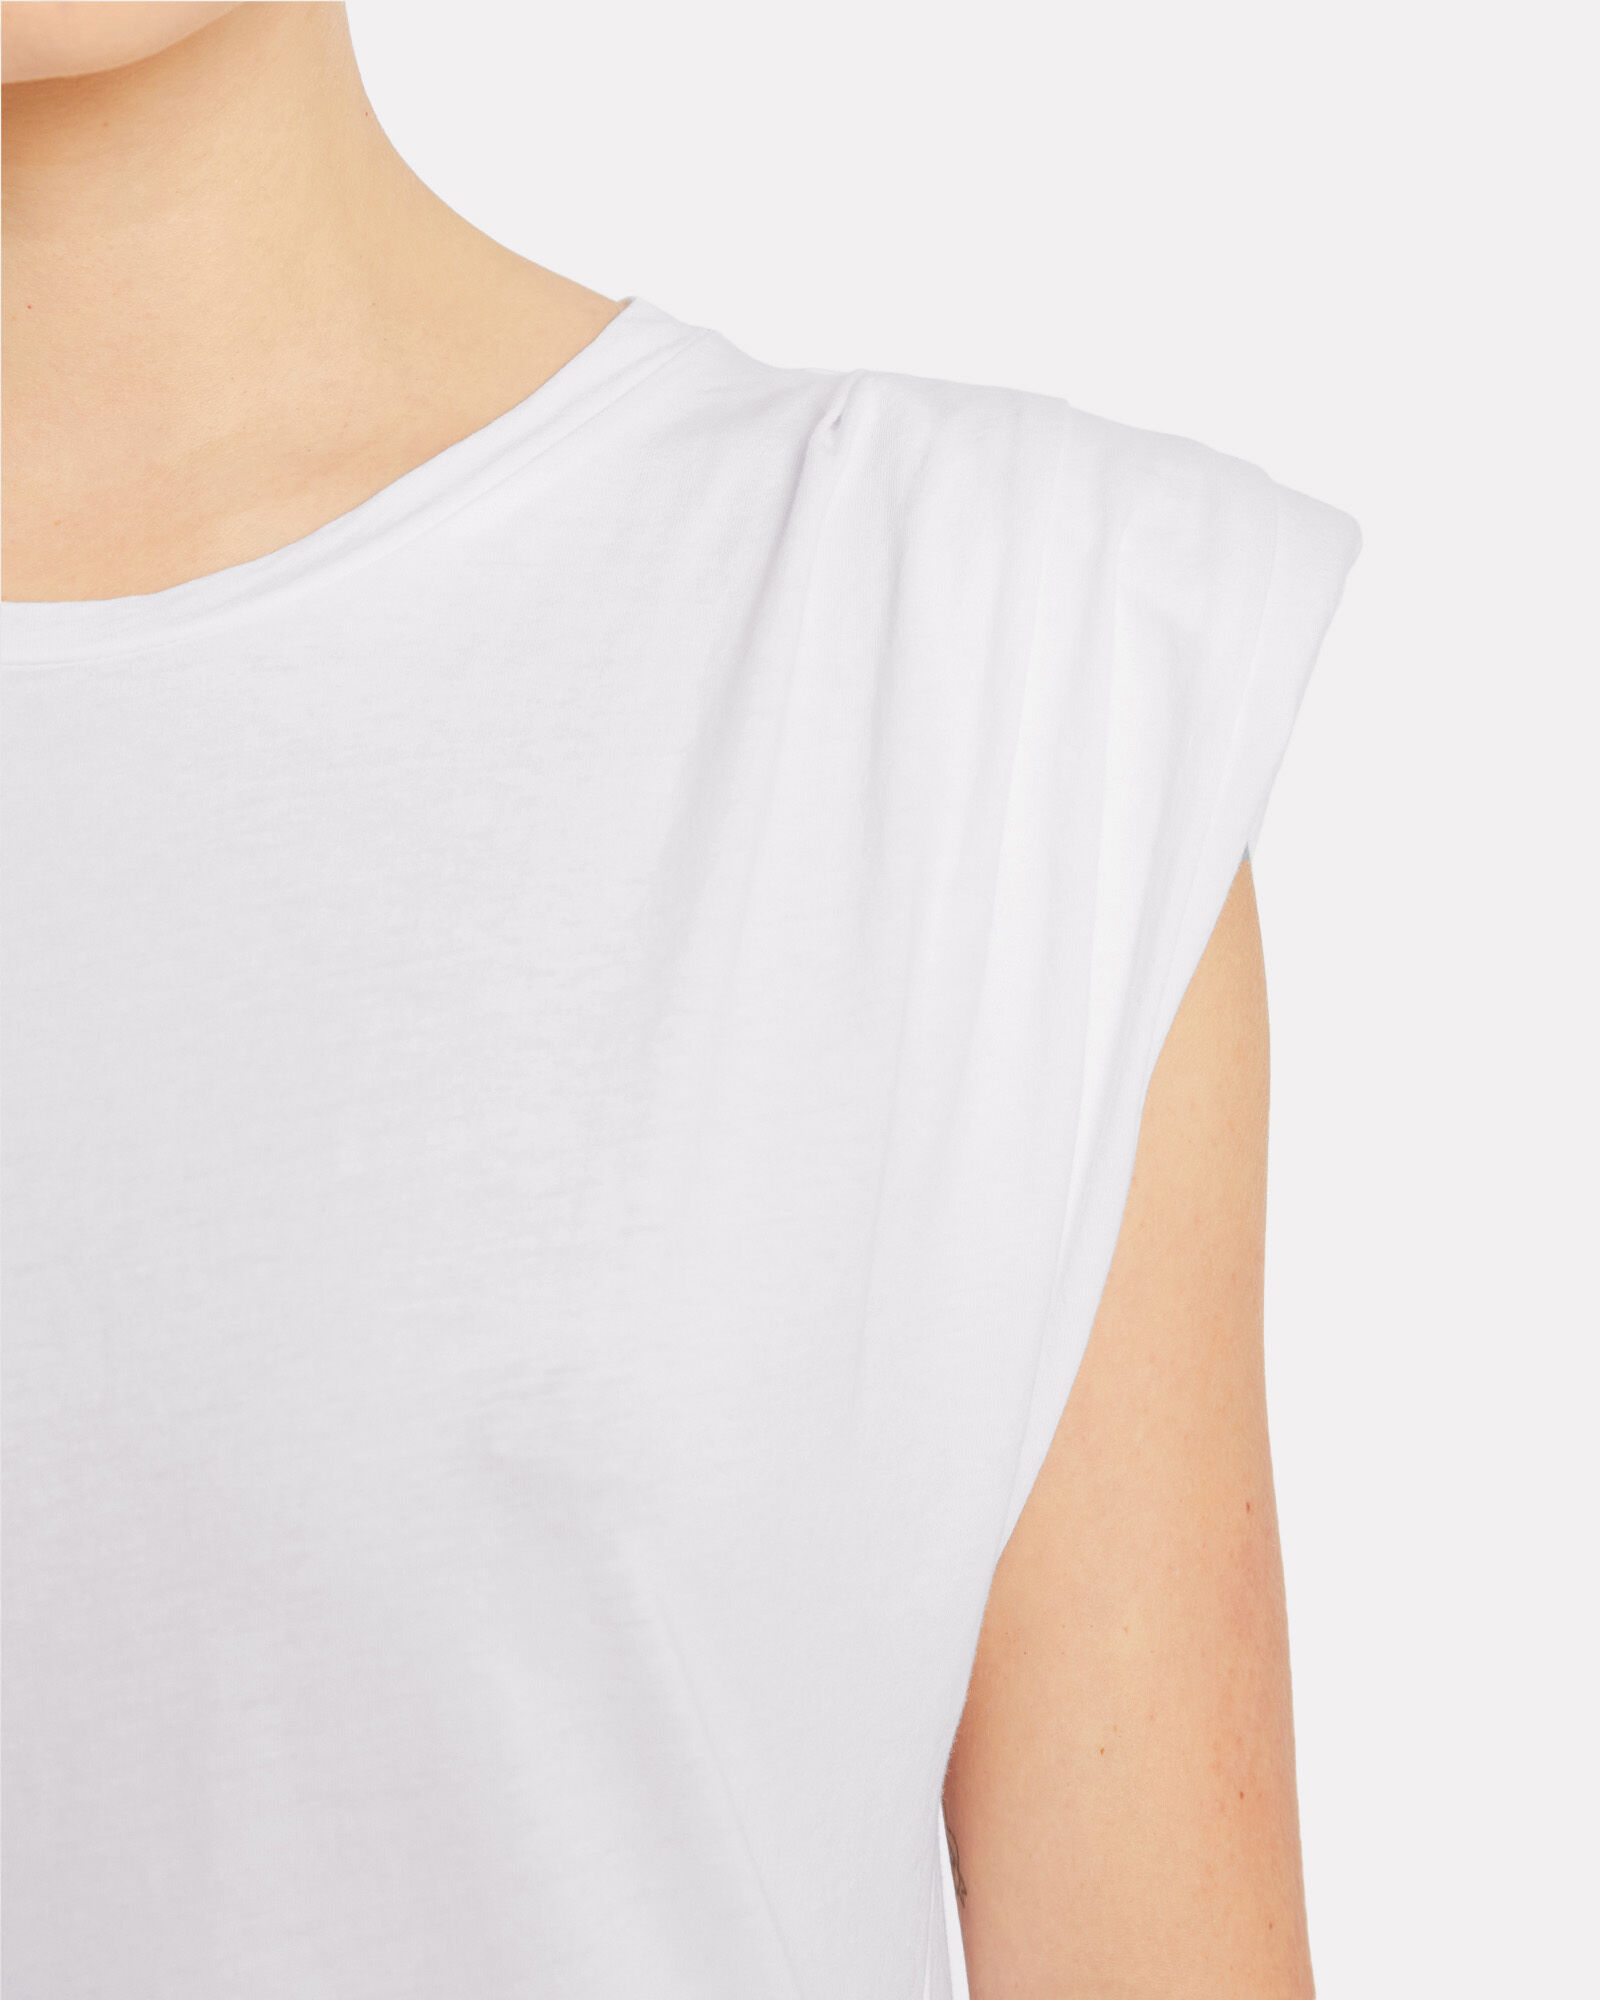 Echo Padded Shoulder Tank Top, , hi-res